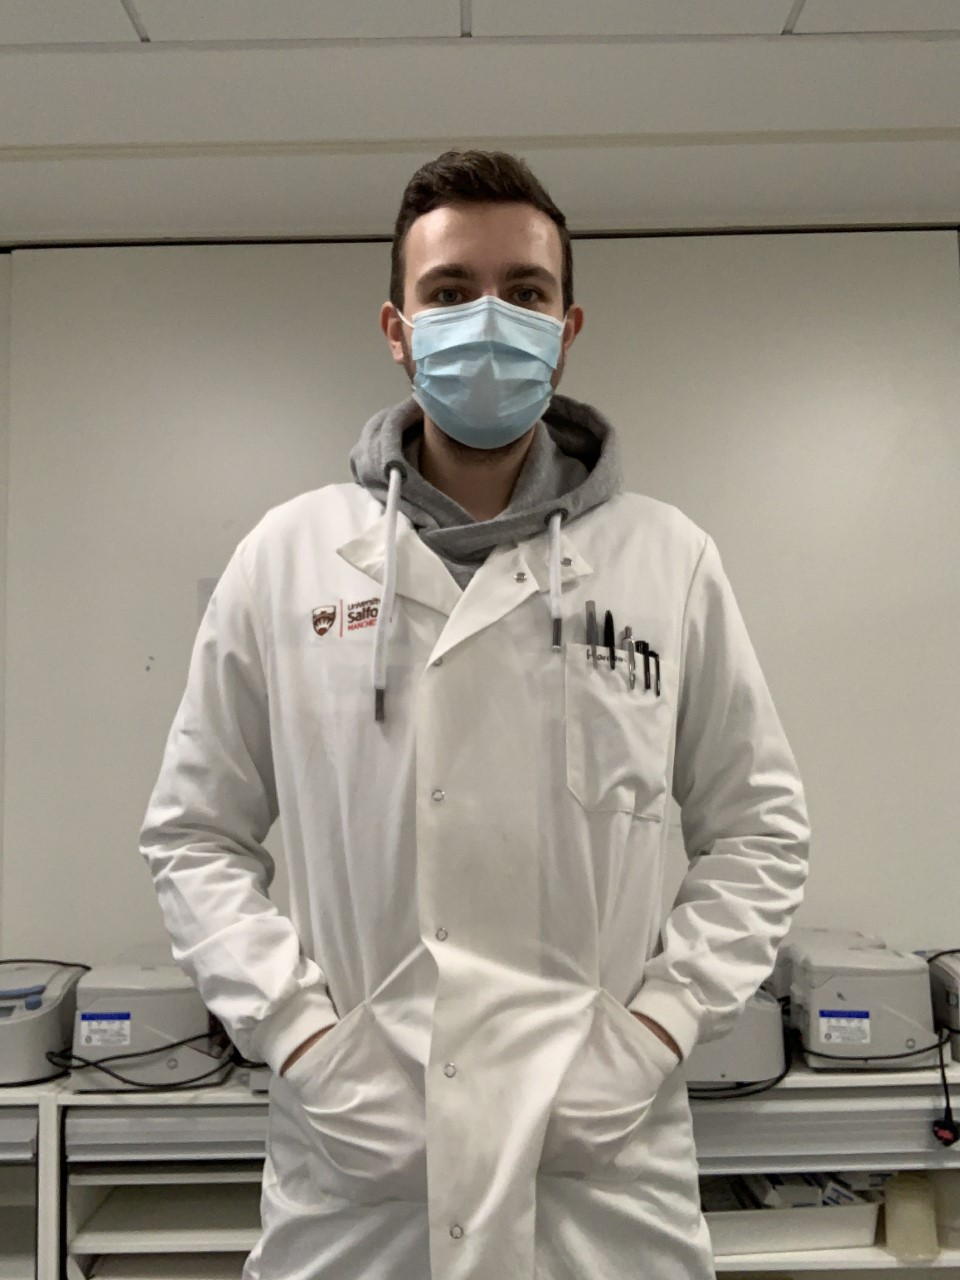 Harrison Barnett was named Stockport College's Best Overall Apprentice of the Year for his work at the Covid-19 testing facility in Alderley Park.